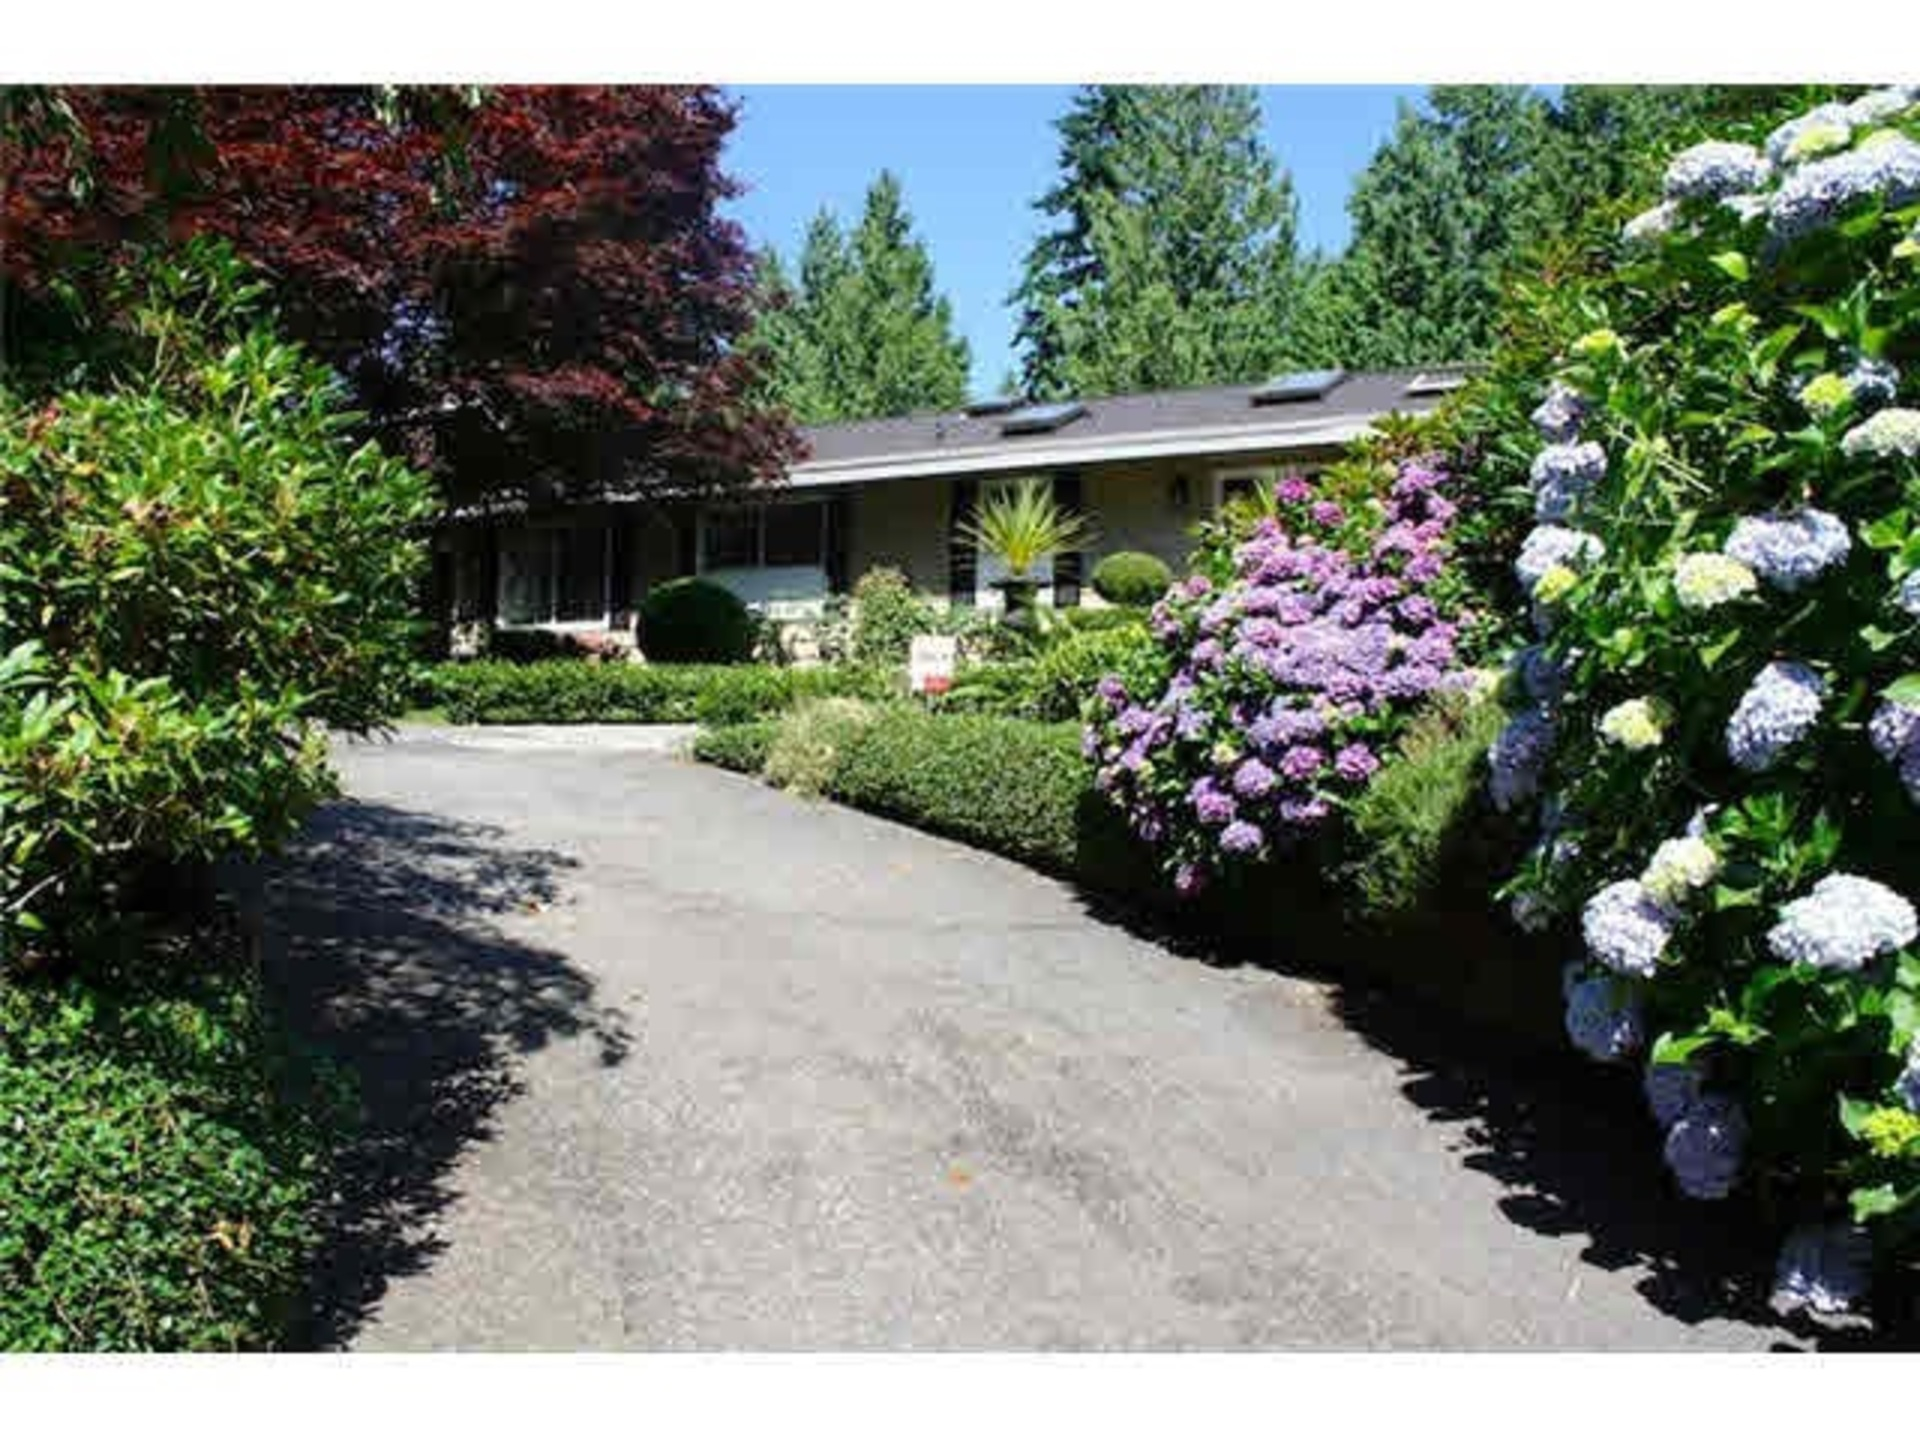 image-262084305-4 at 4485 Keith Road, Caulfeild, West Vancouver